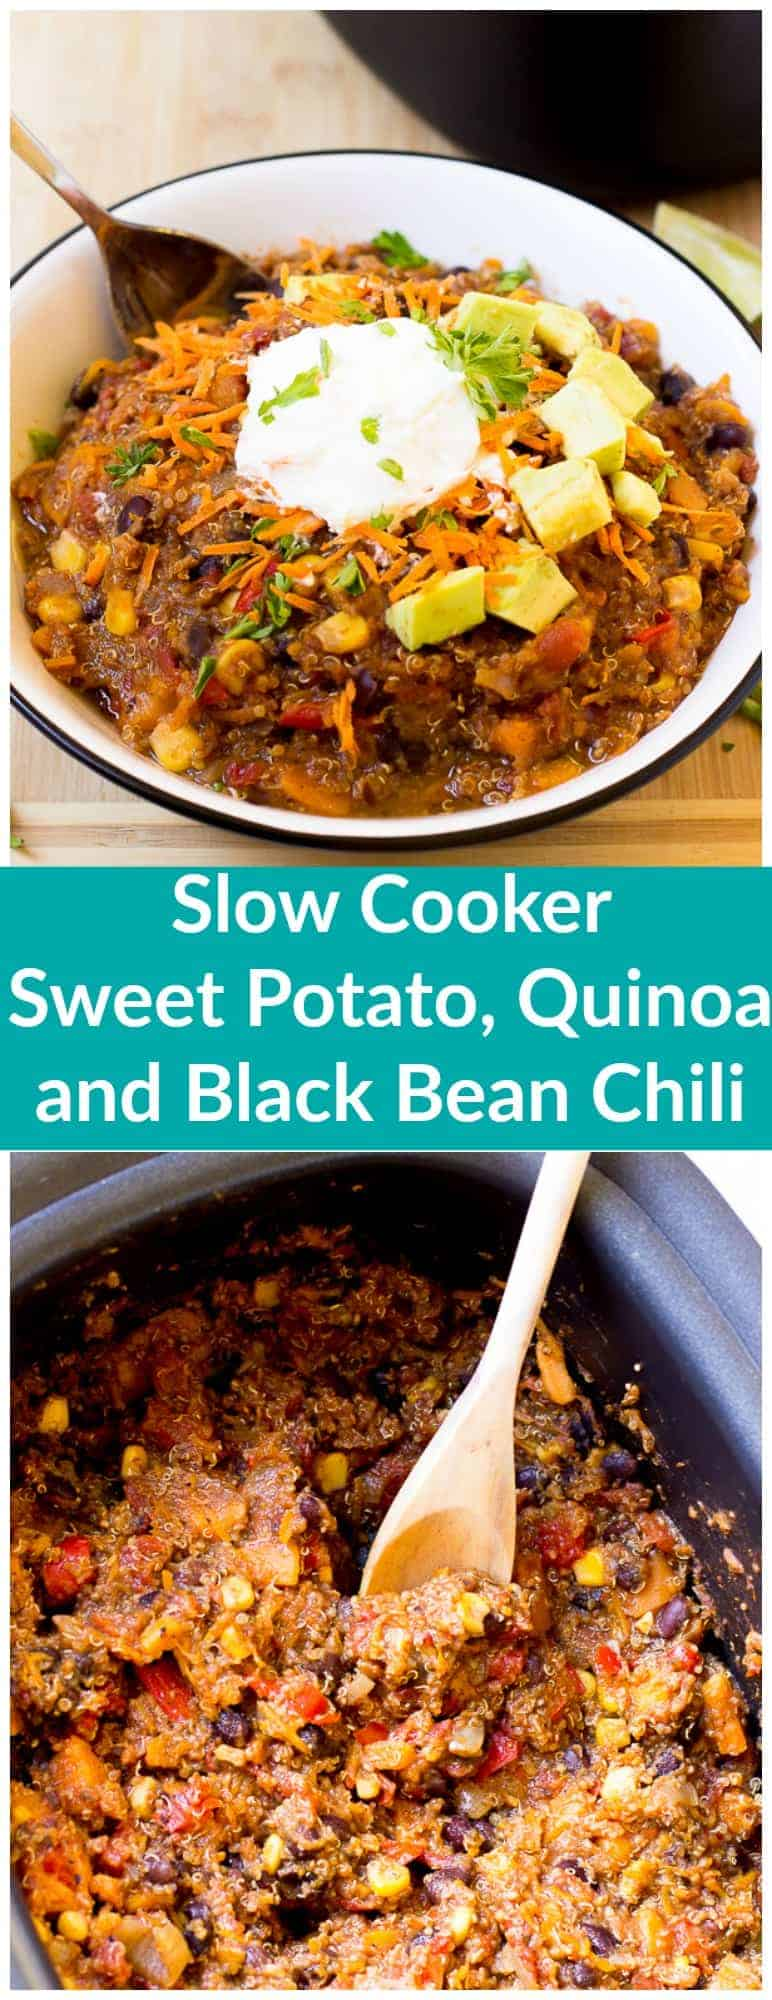 This Slow Cooker Sweet Potato, Quinoa and Black Bean Chili takes only 15 minutes to prep and then right into the slow cooker! It results in a hearty, thick and delicious chili!